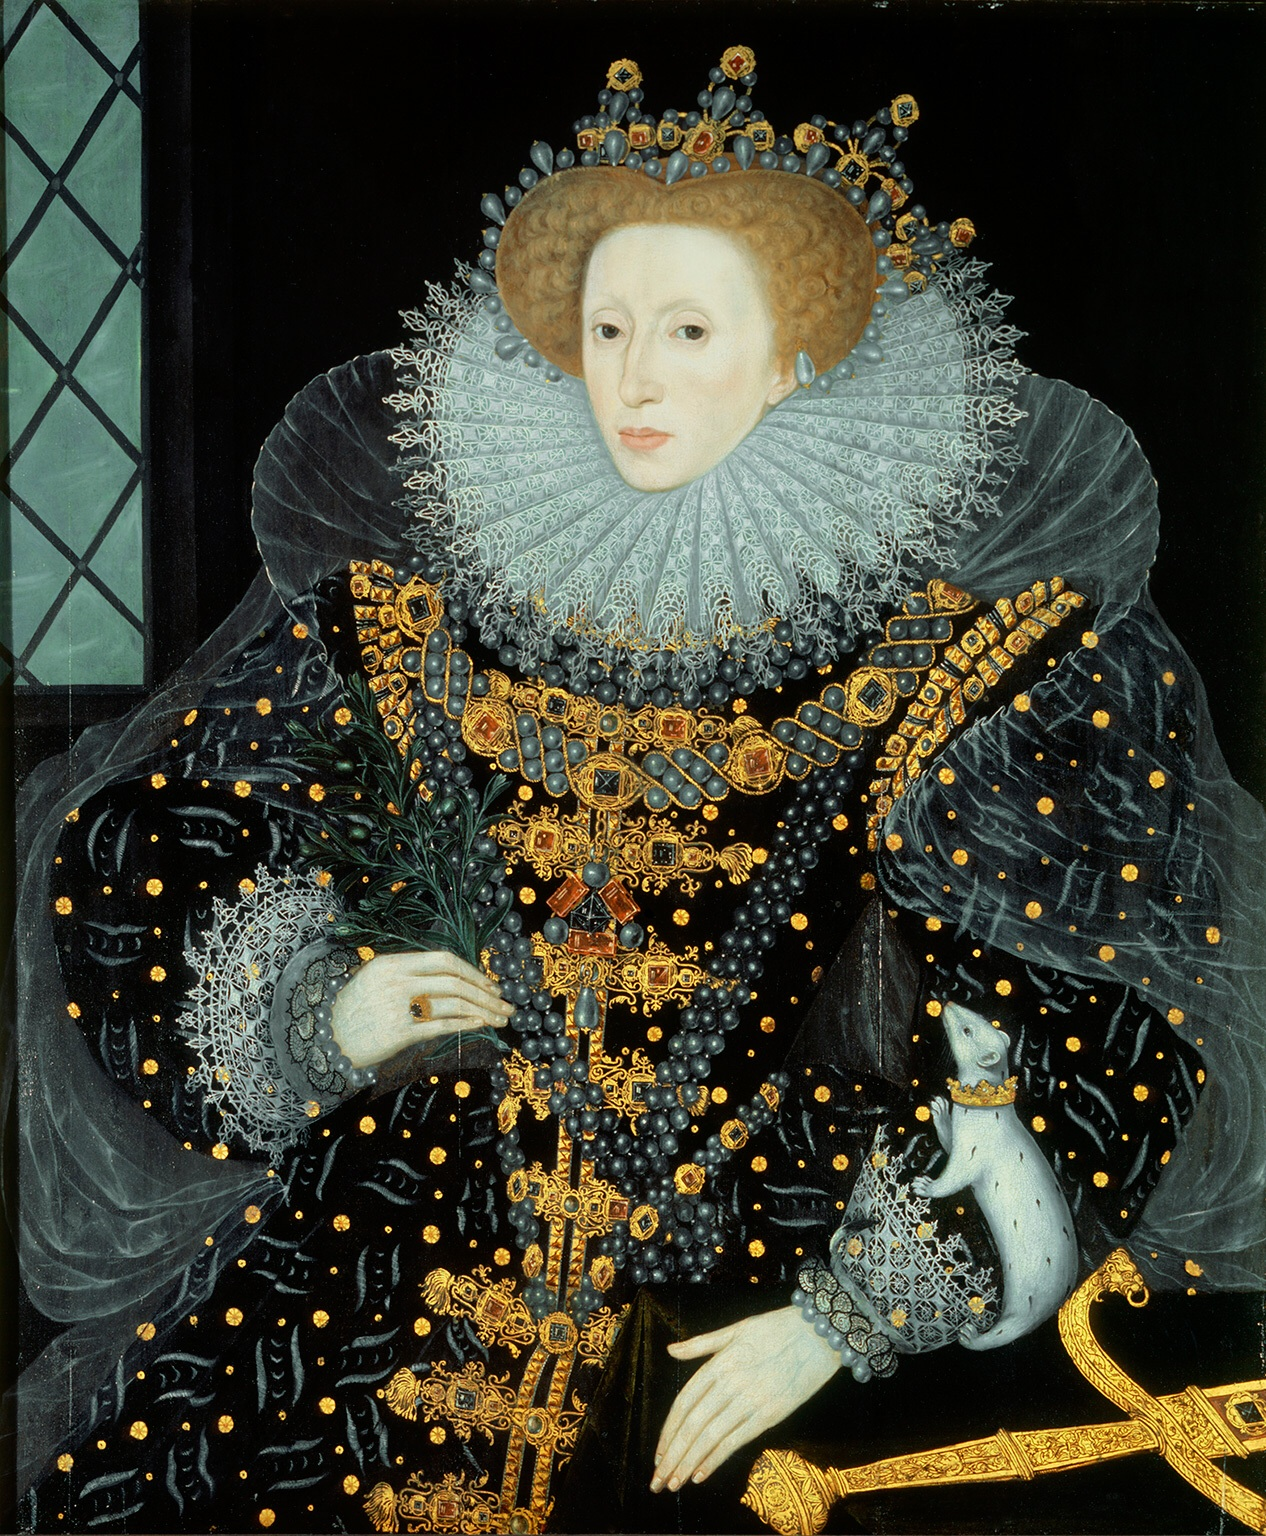 Portrait of Elizabeth I made in 1585